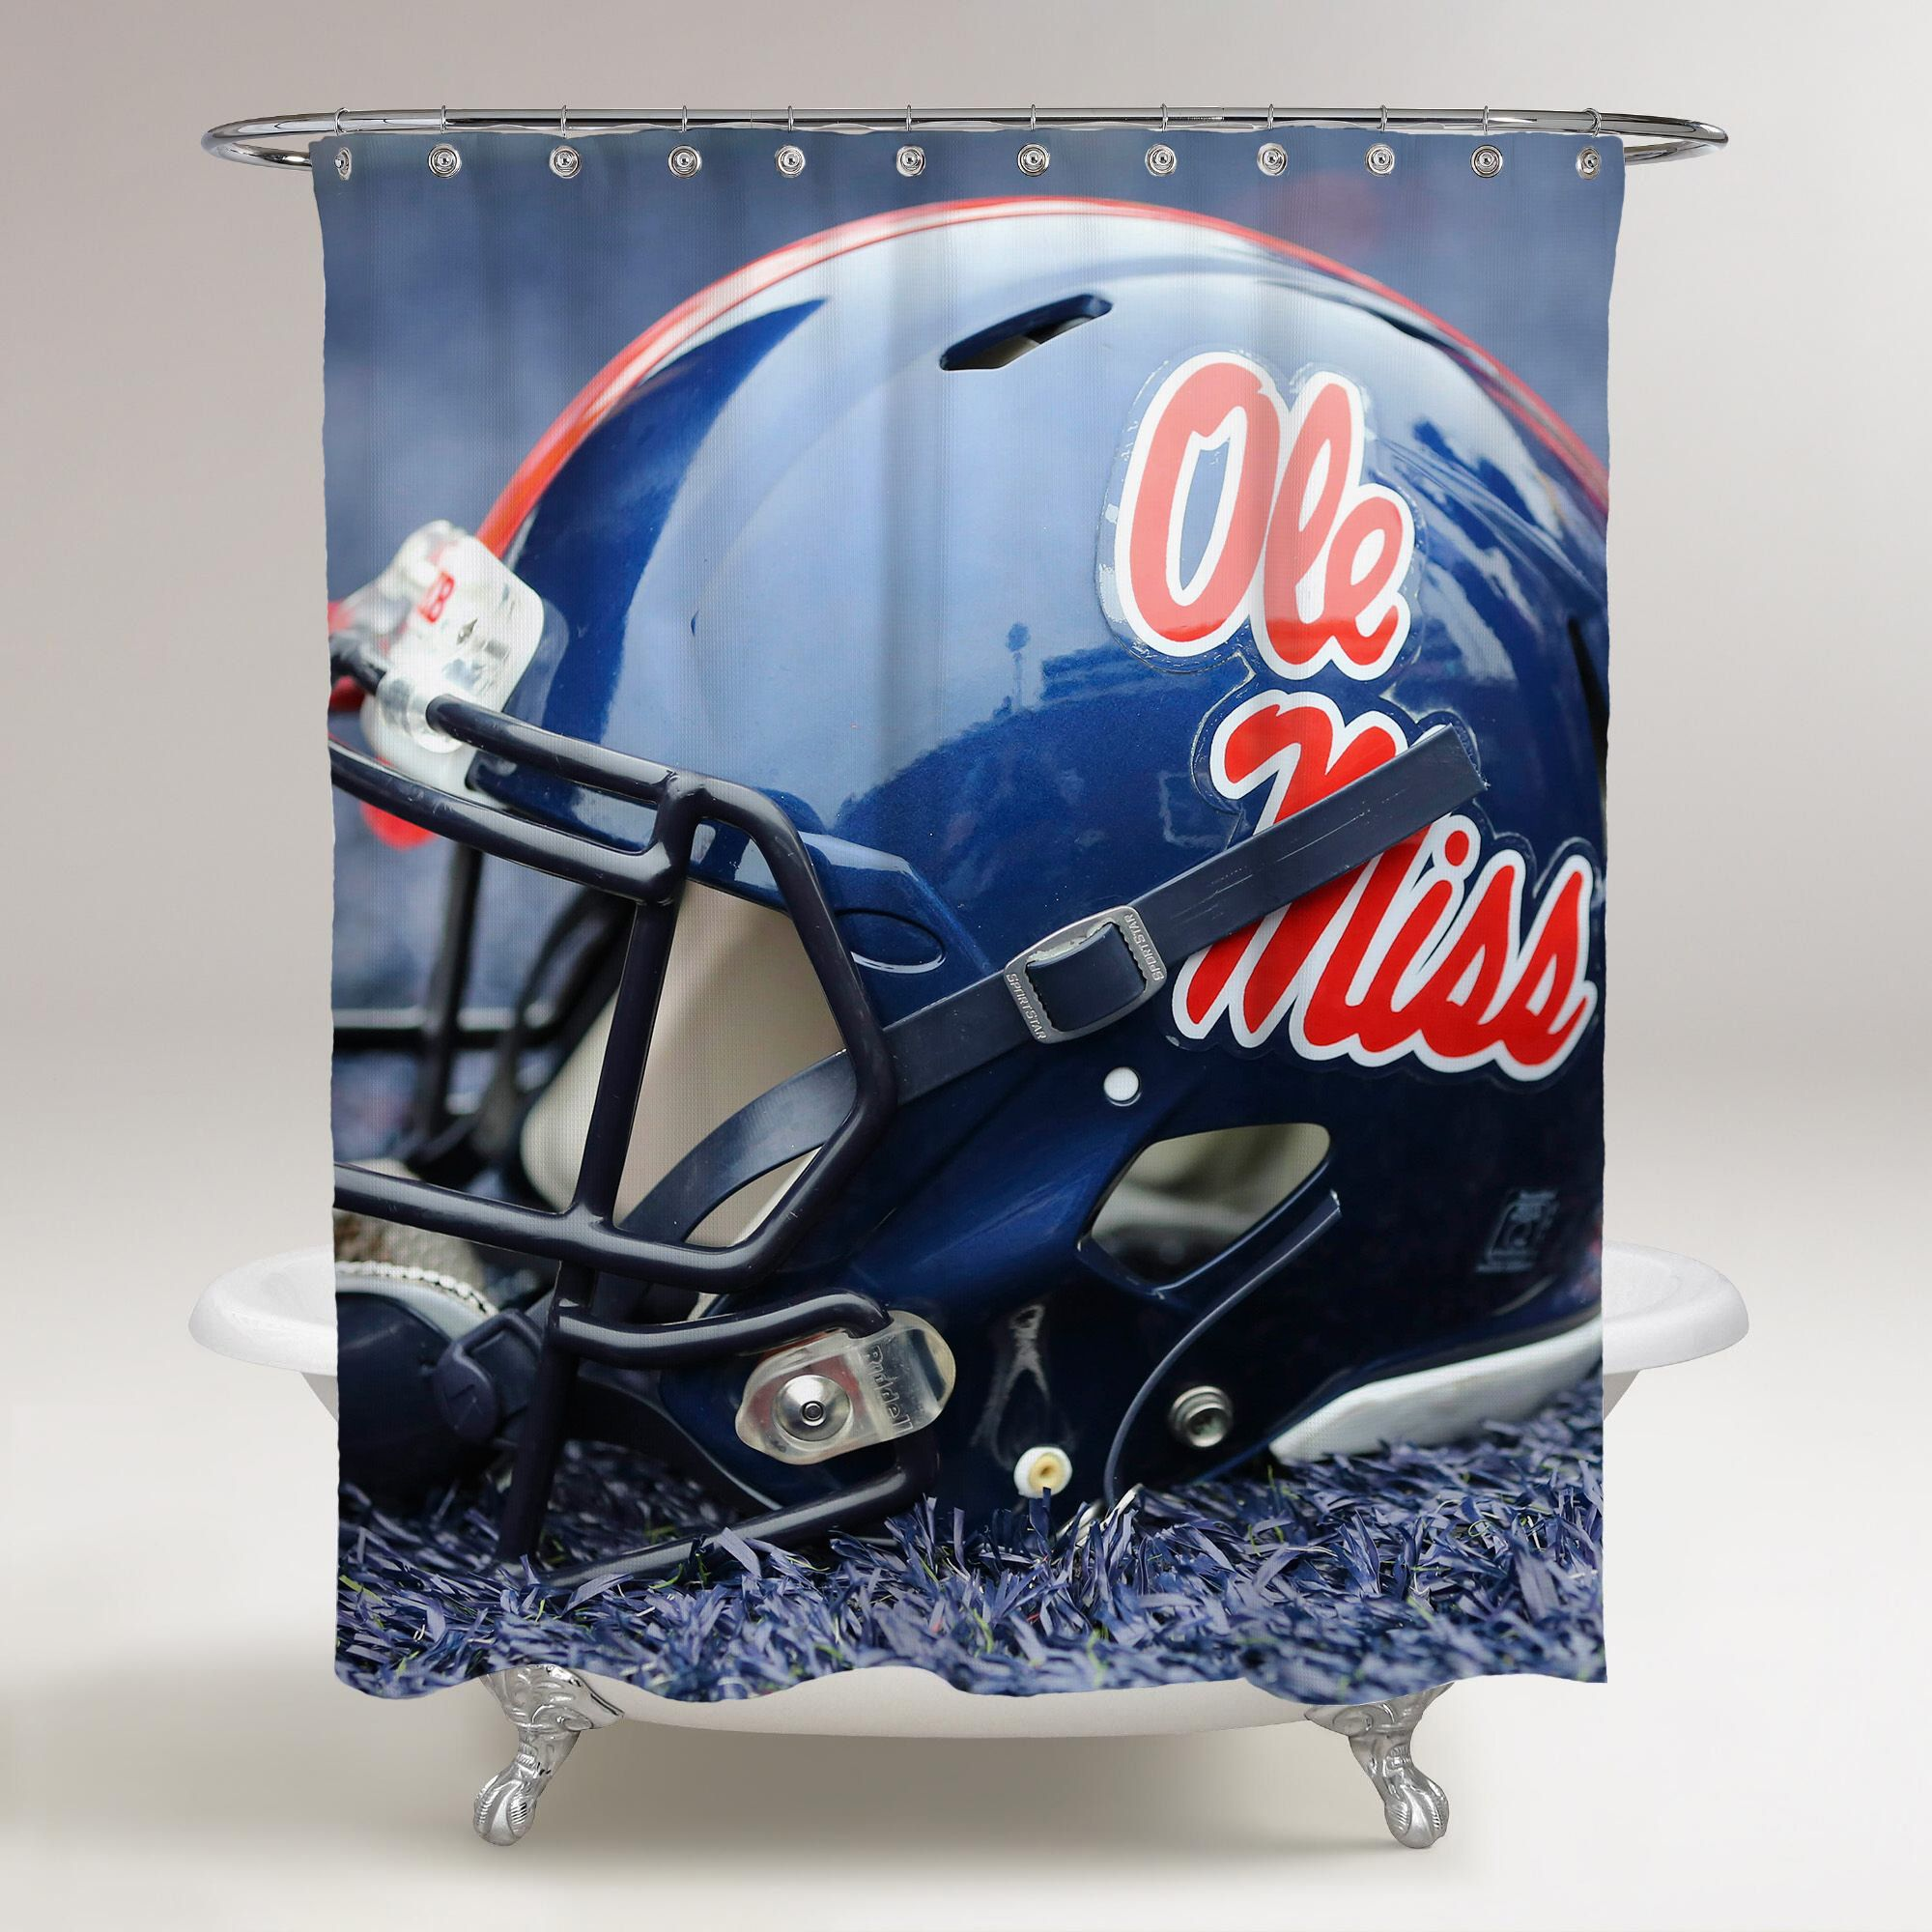 OLE MISS REBELS RED HELMET WALLPAPER Printed Shower Curtain Bathroom Decor Price FREE Shipping